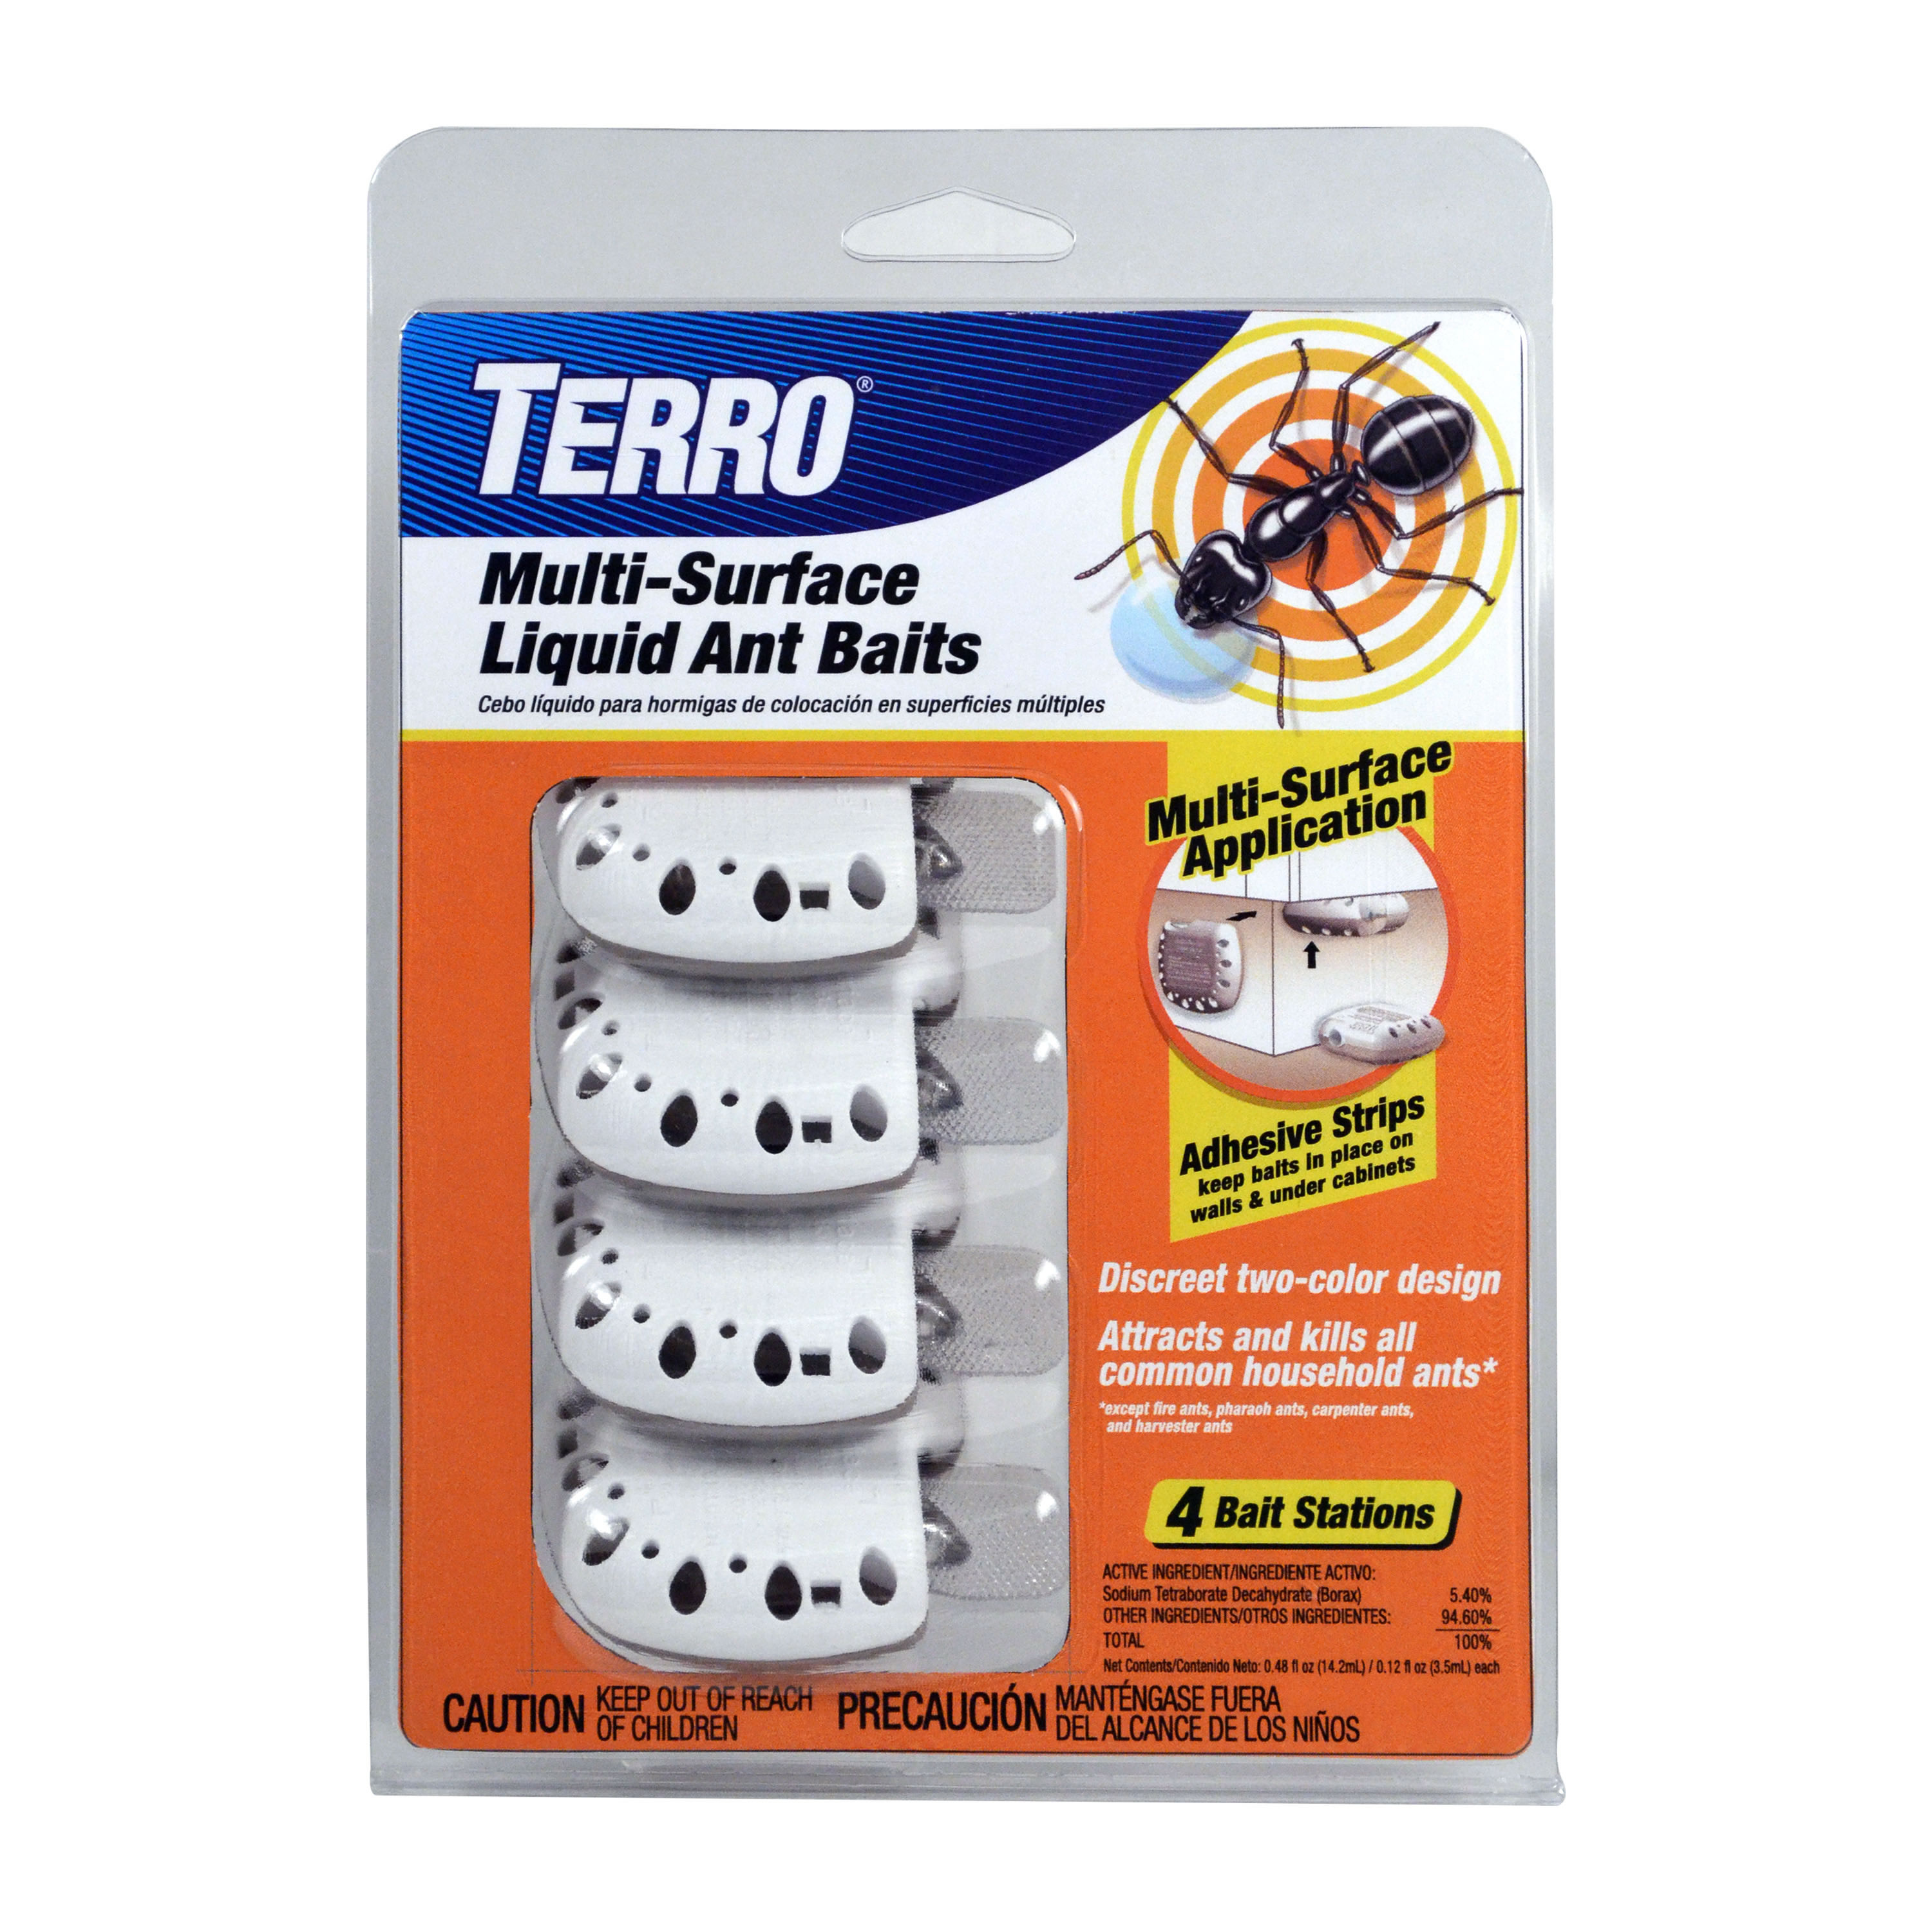 TERRO Multi-Surface Liquid Ant Baits – 4 Discreet Bait Stations